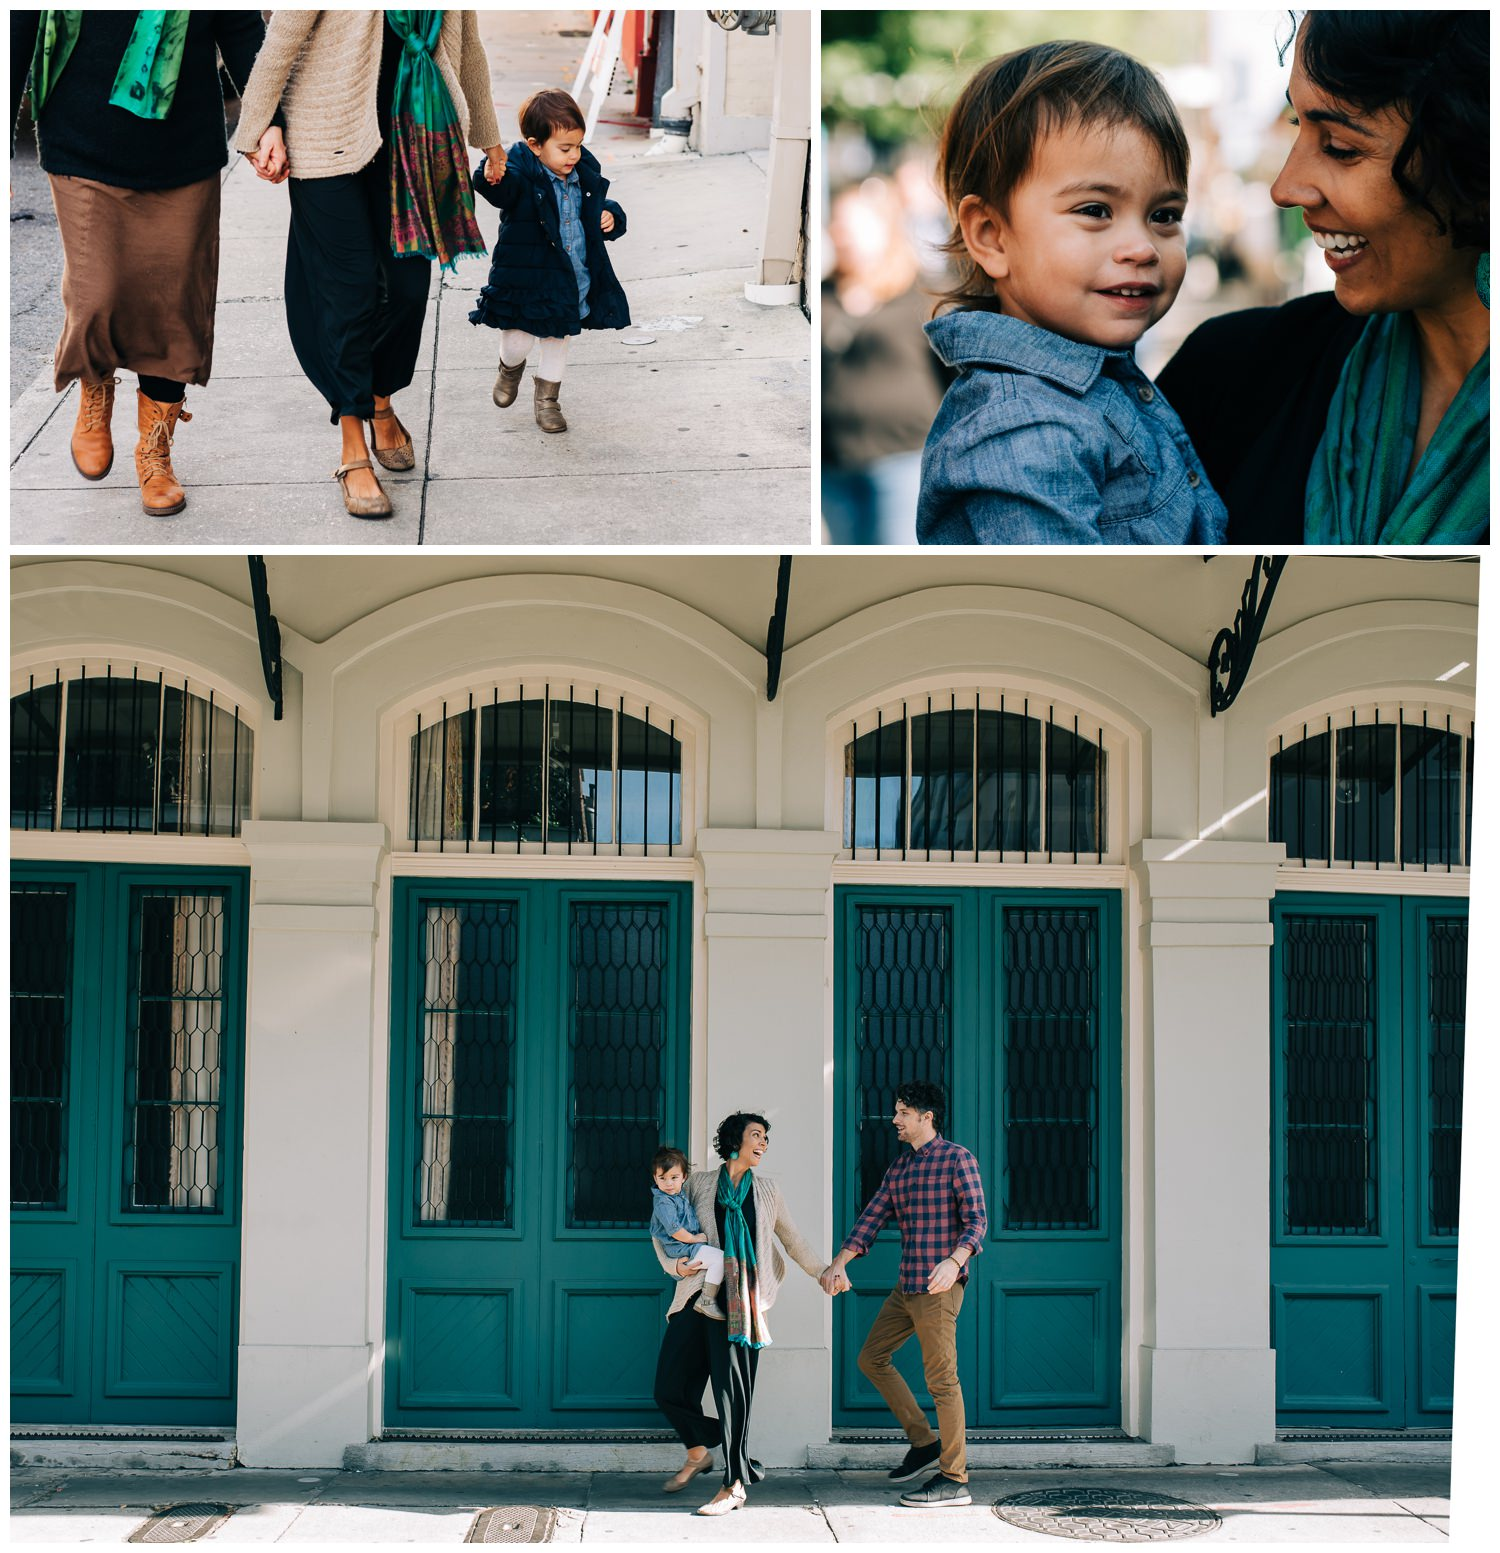 New-Orleans-Family-photos- French-Quarter-Family-New-Orleans-Photographer- kallistia-photography_0002.jpg